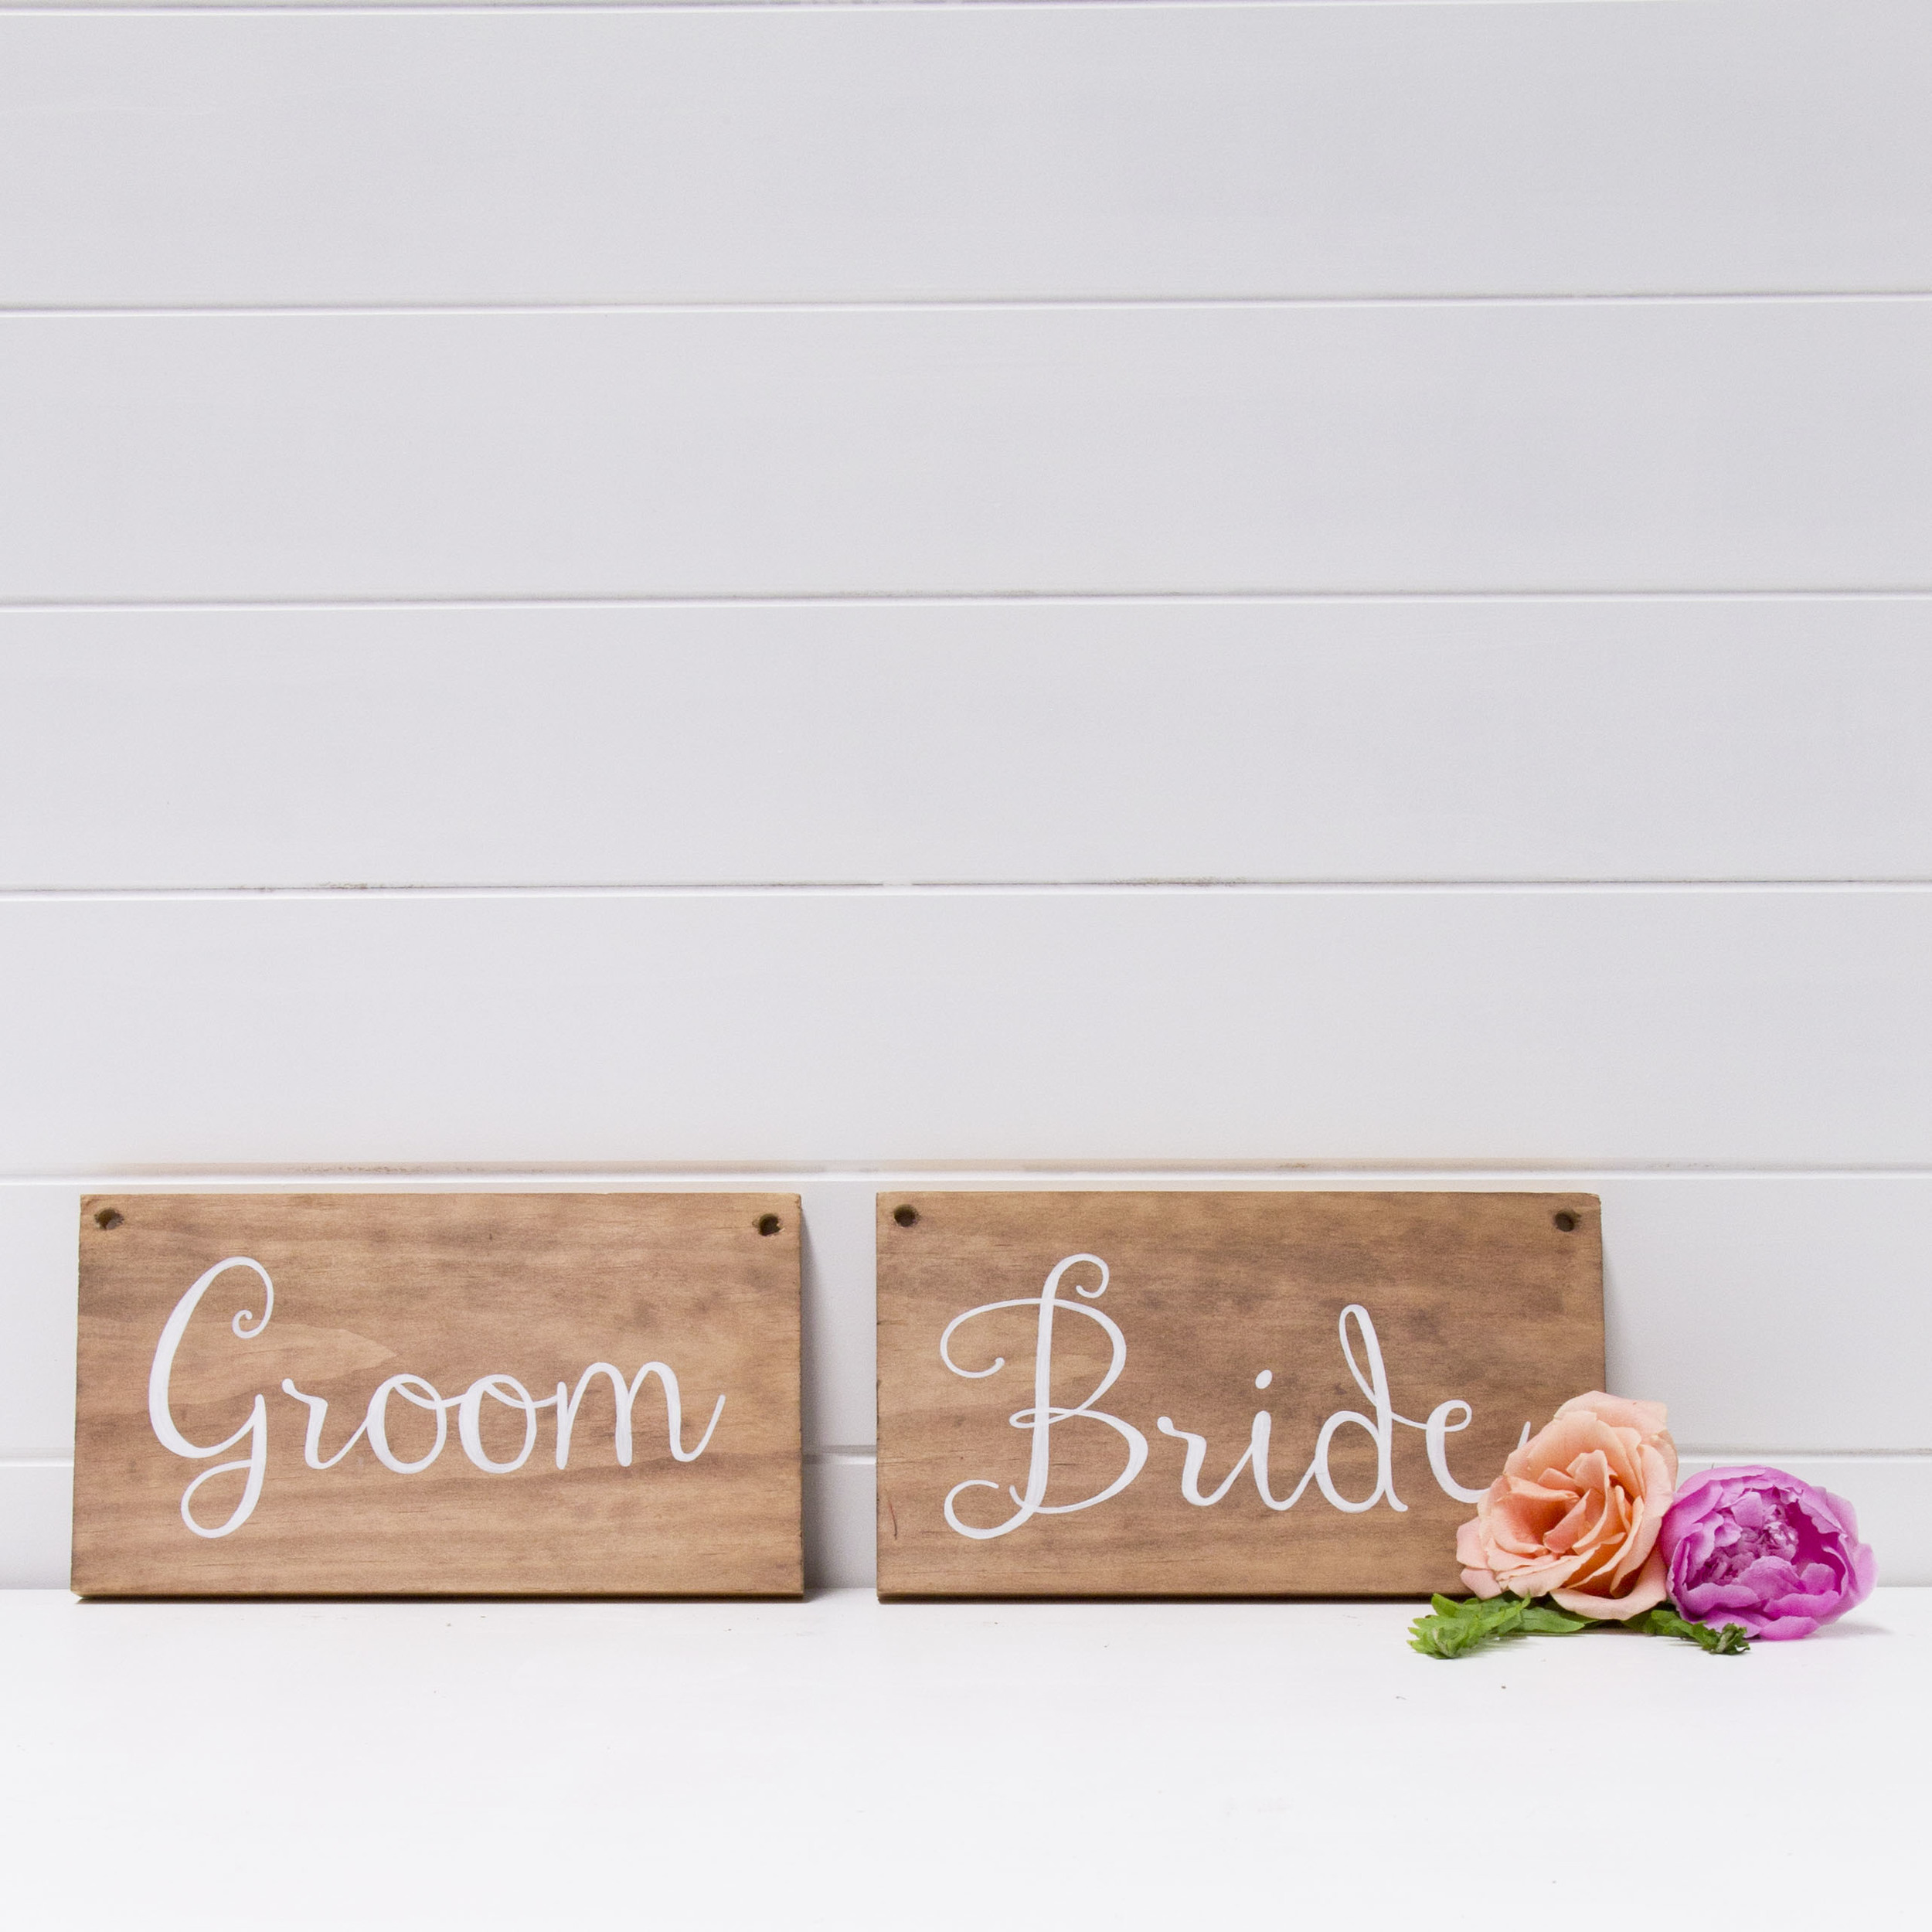 BRIDE AND GROOM WOODEN SIGNS QTY: 2